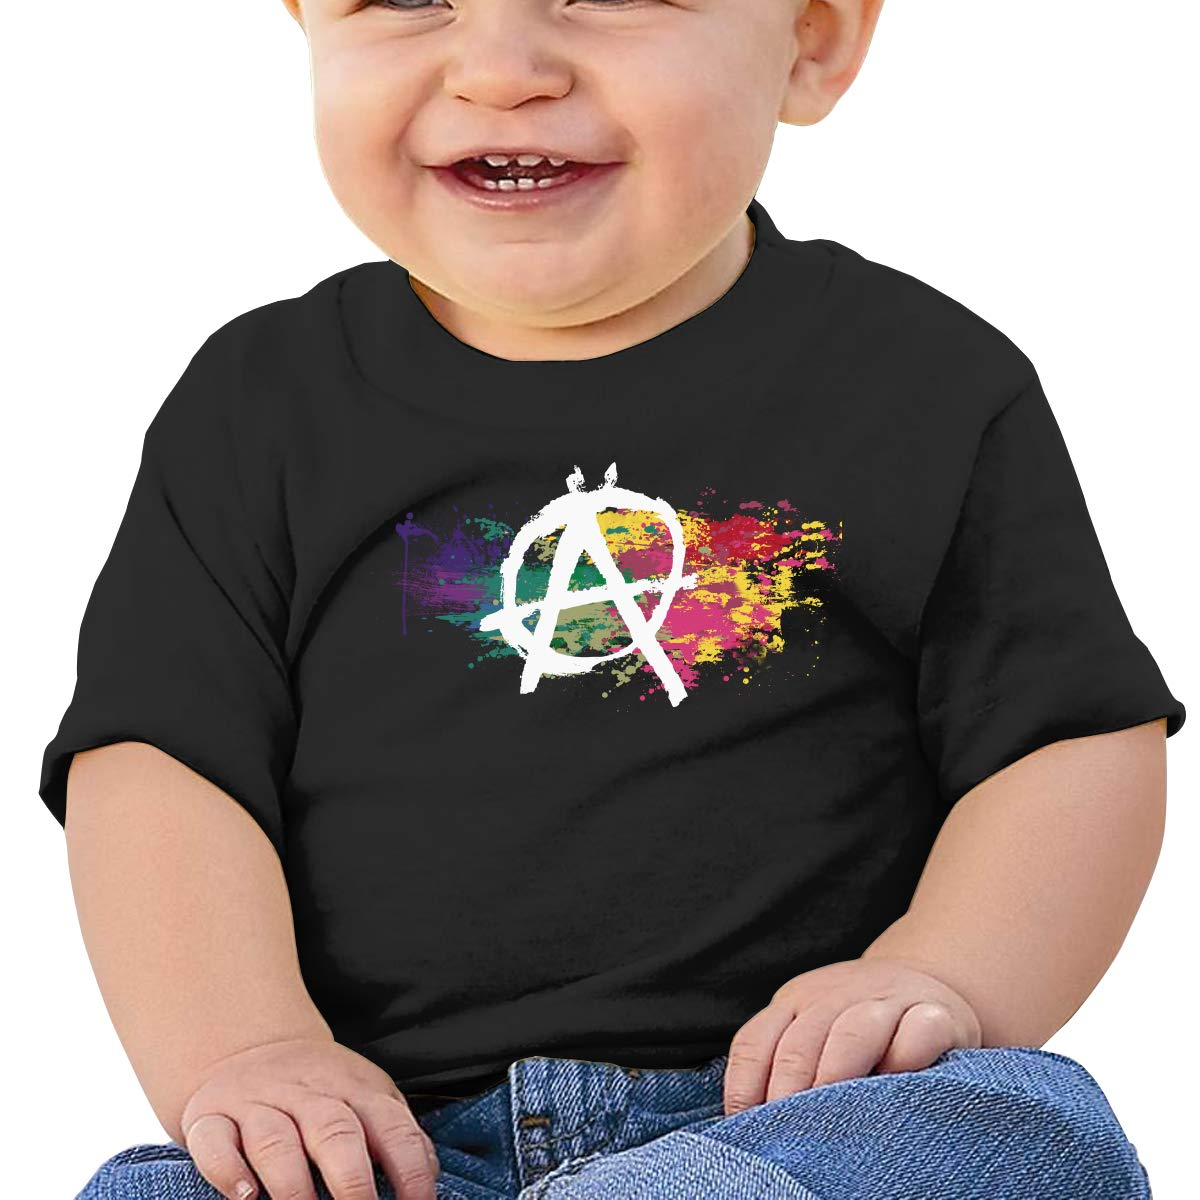 Anarchy Symbol Watercolor Rainbow Toddler Short-Sleeve Tee for Boy Girl Infant Kids T-Shirt On Newborn 6-18 Months